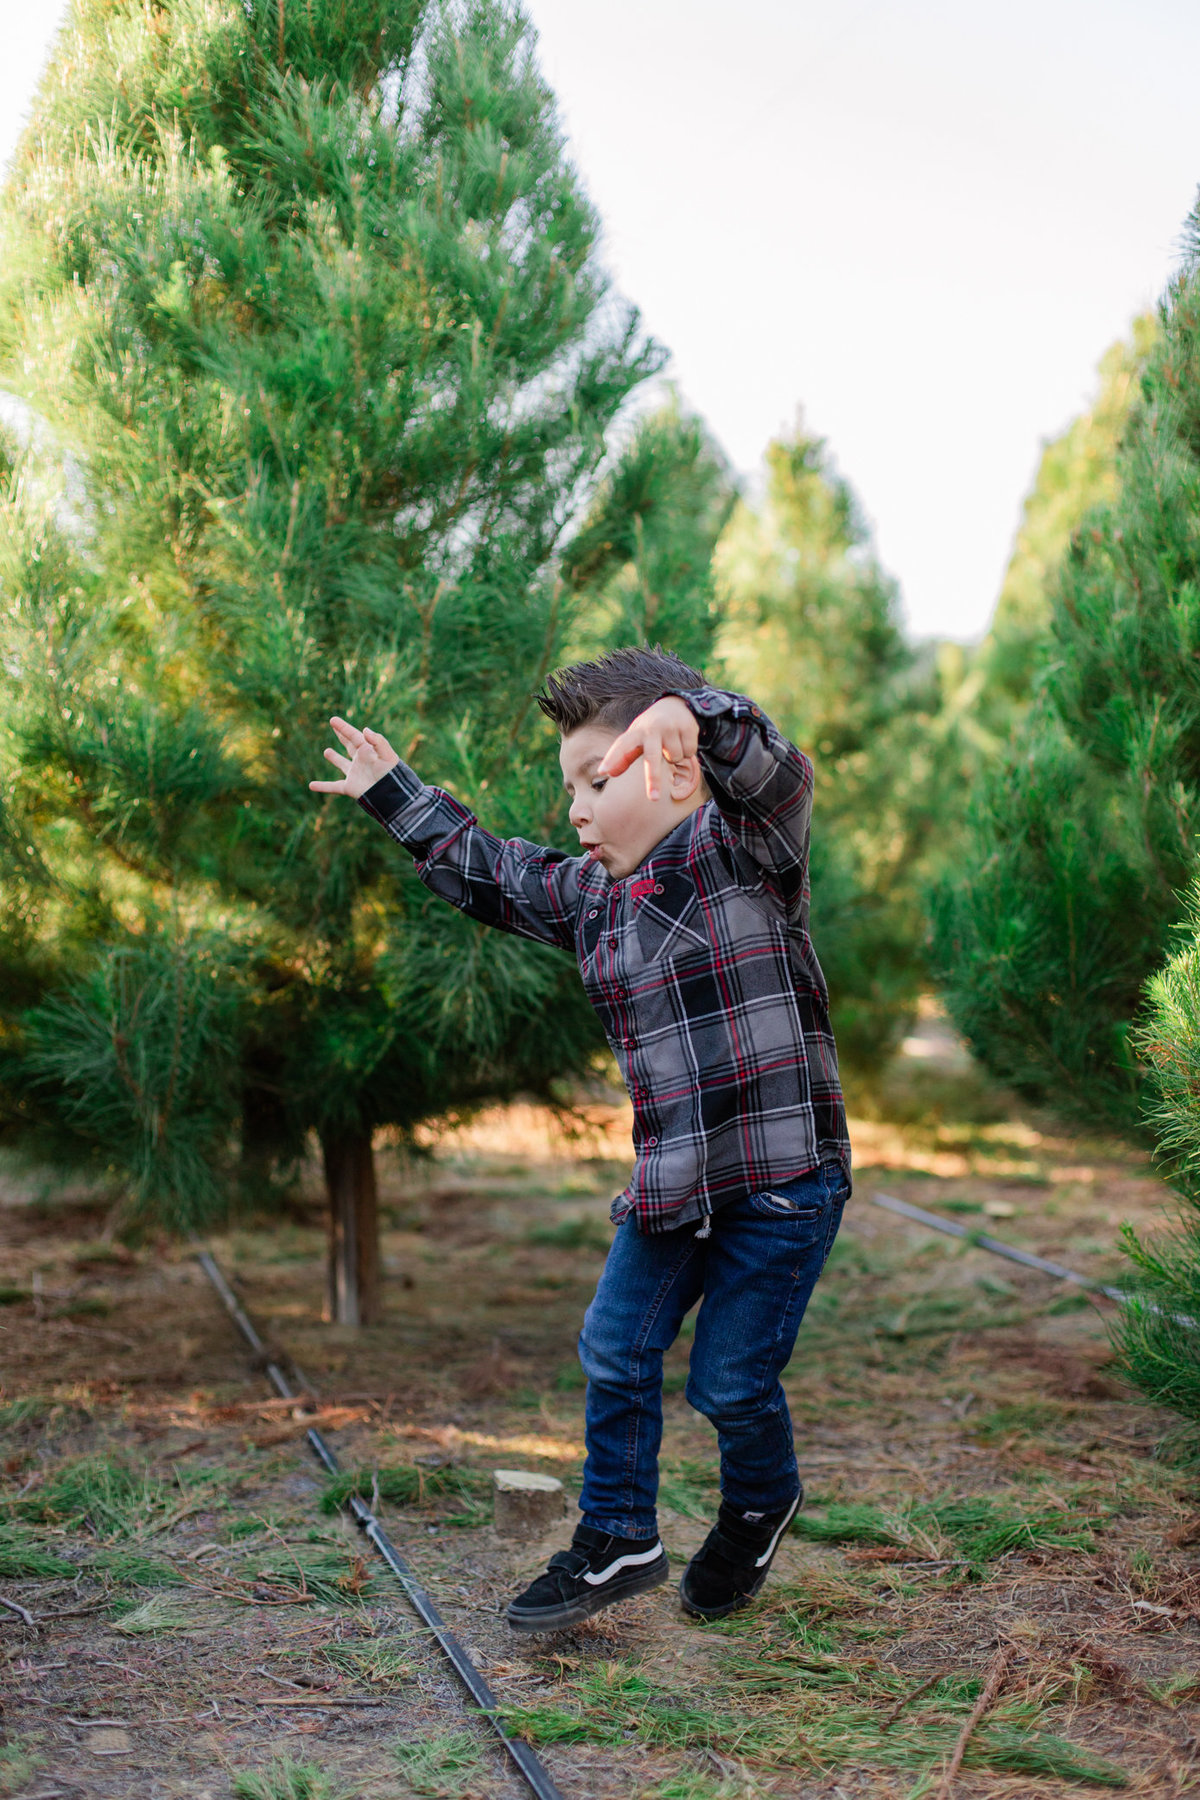 Xmas Photography, Rye Farm Christmas Tree, Family Photography S&V-21